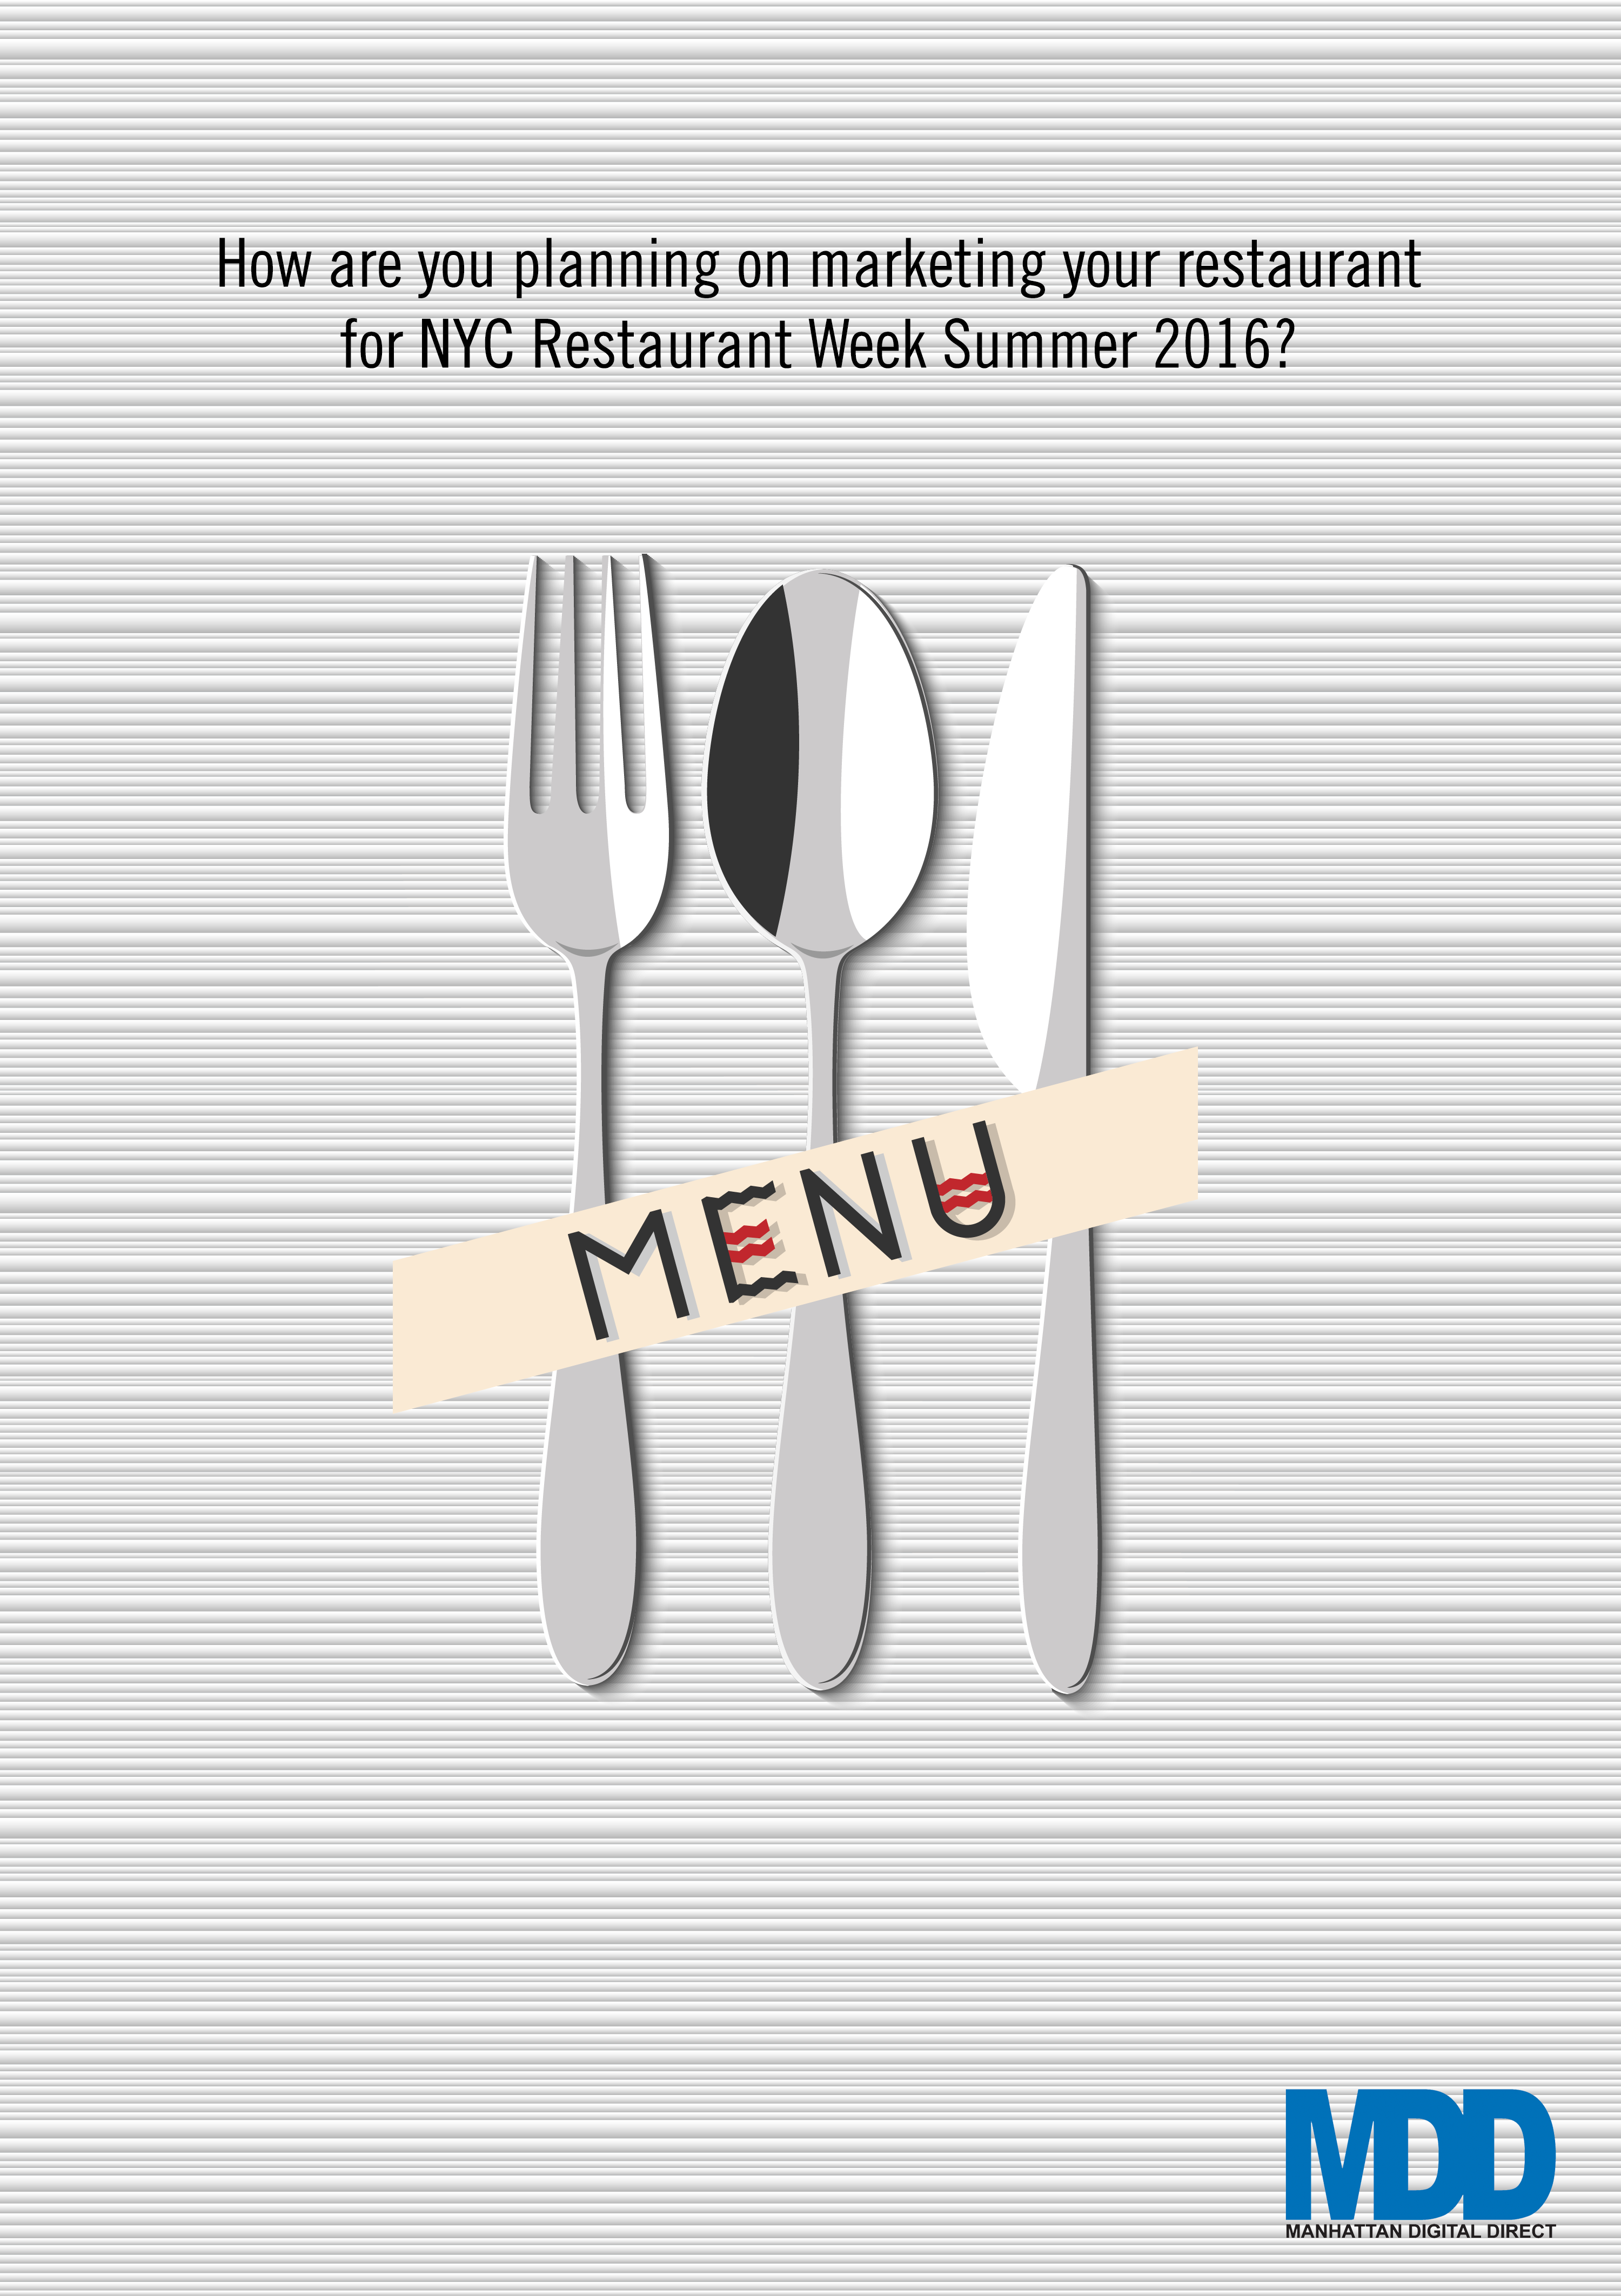 MDD NYC Restaurant Week Summer 2016